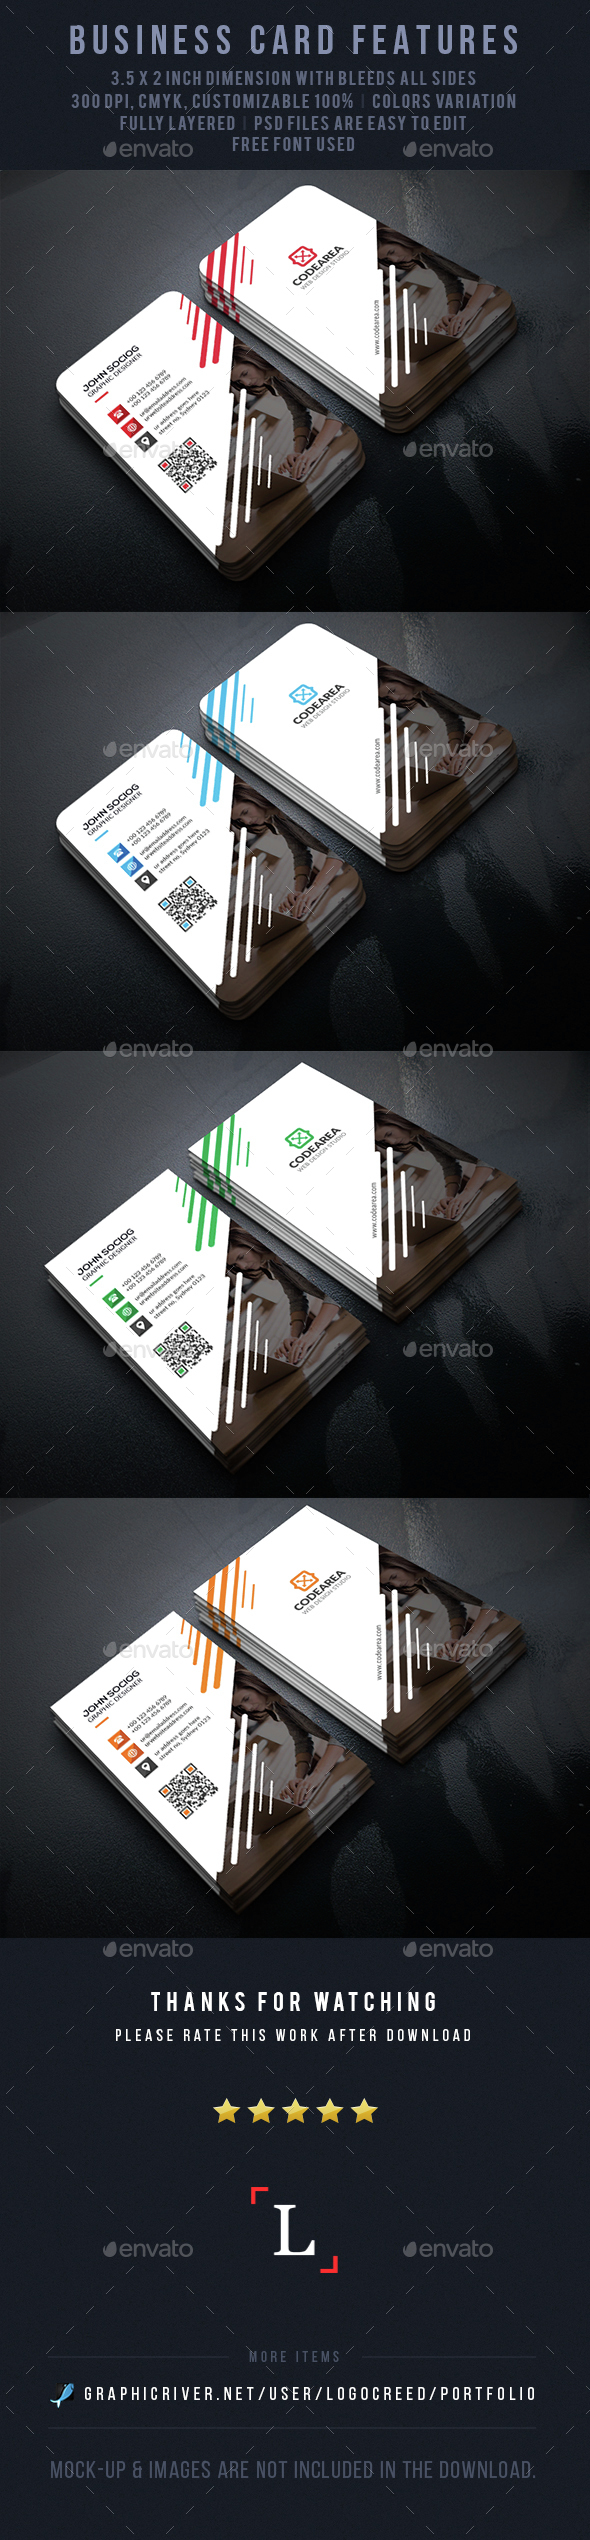 Elegant Corporate Business Card - Business Cards Print Templates